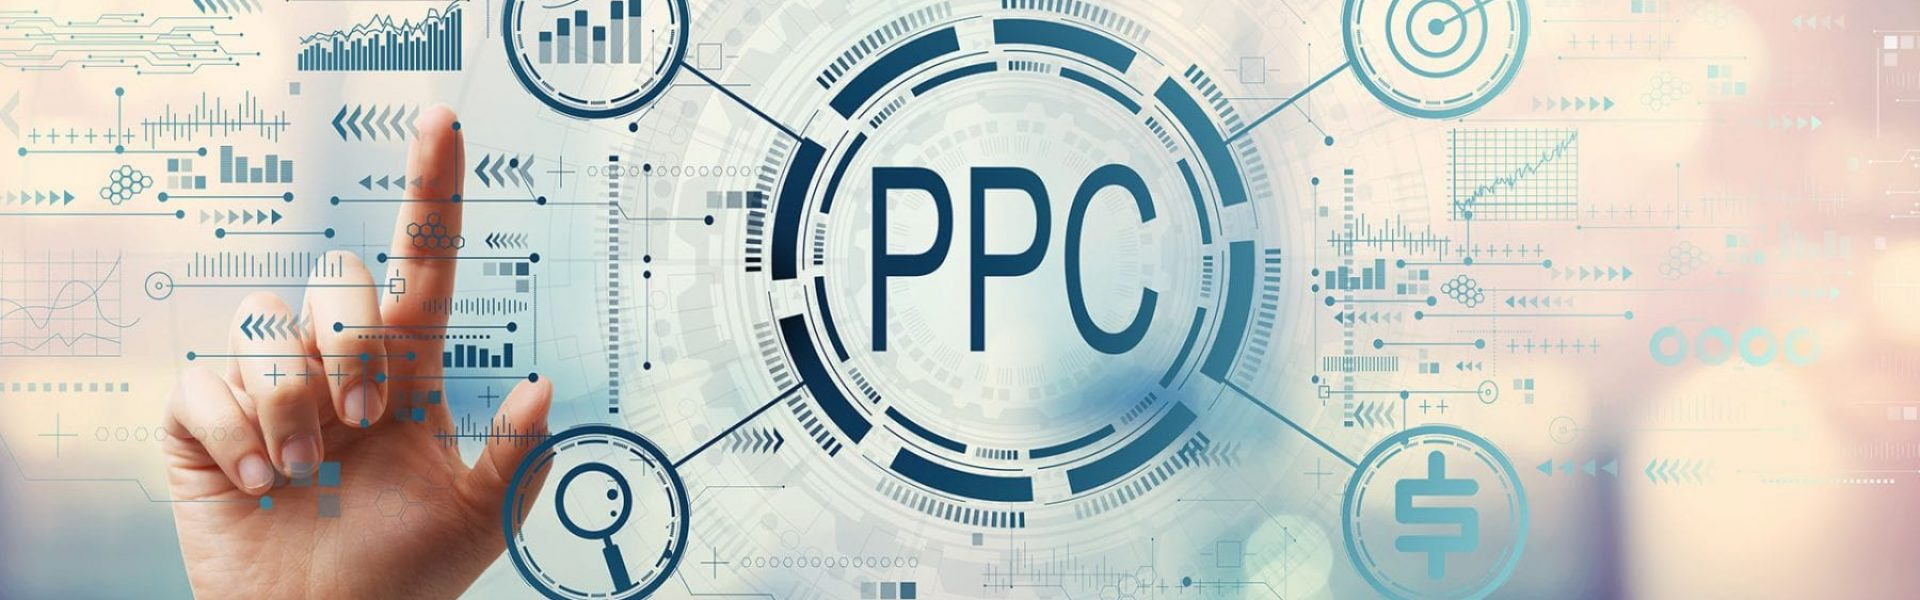 What is PPC? Why Should You Care?